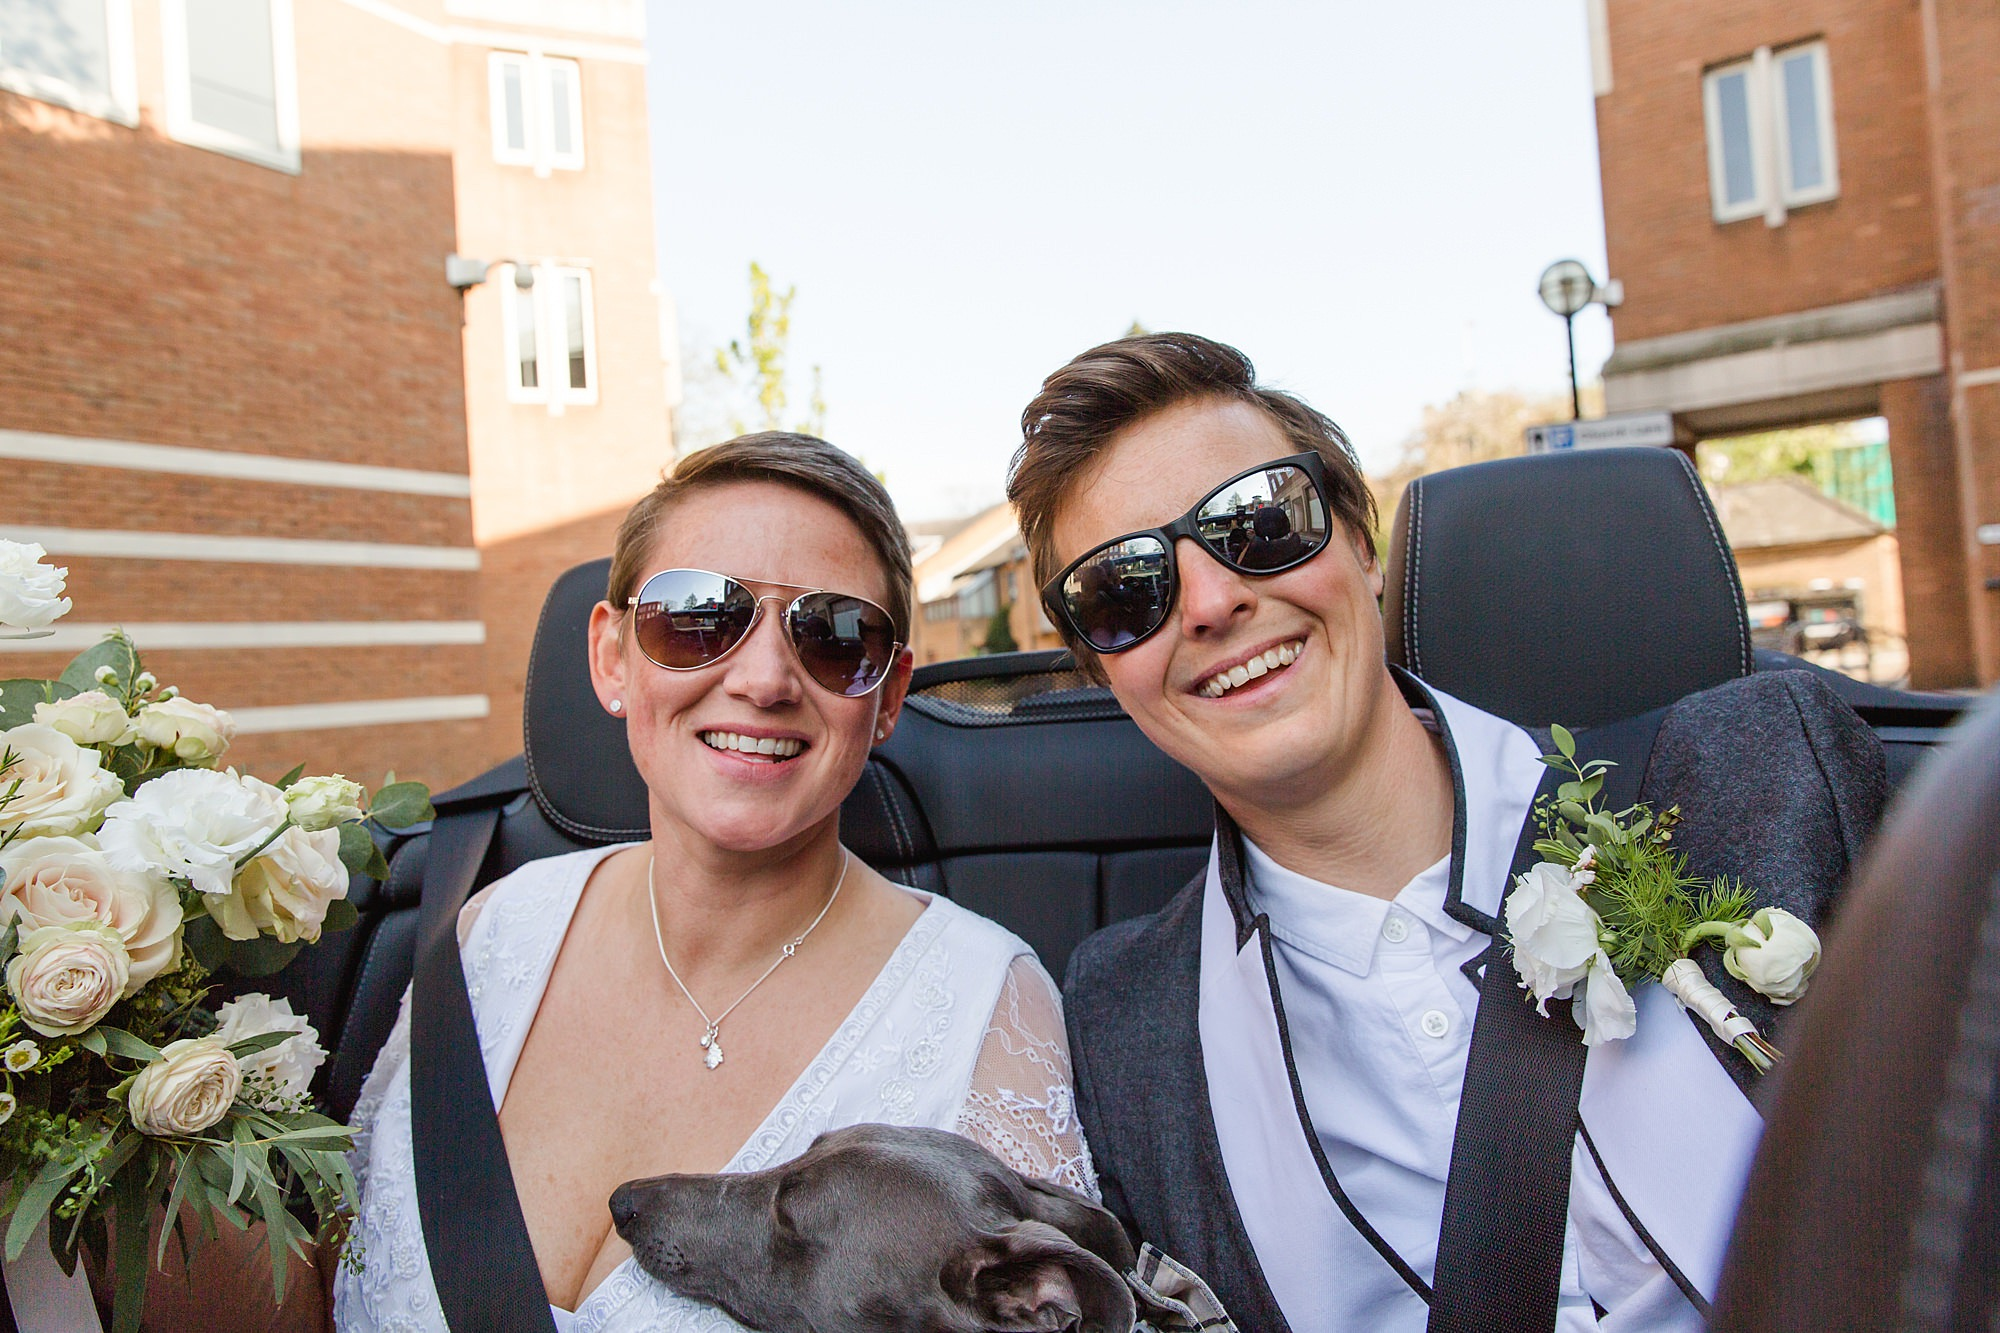 Twickenham wedding photography brides wearing sunglasses in their car on way to reception